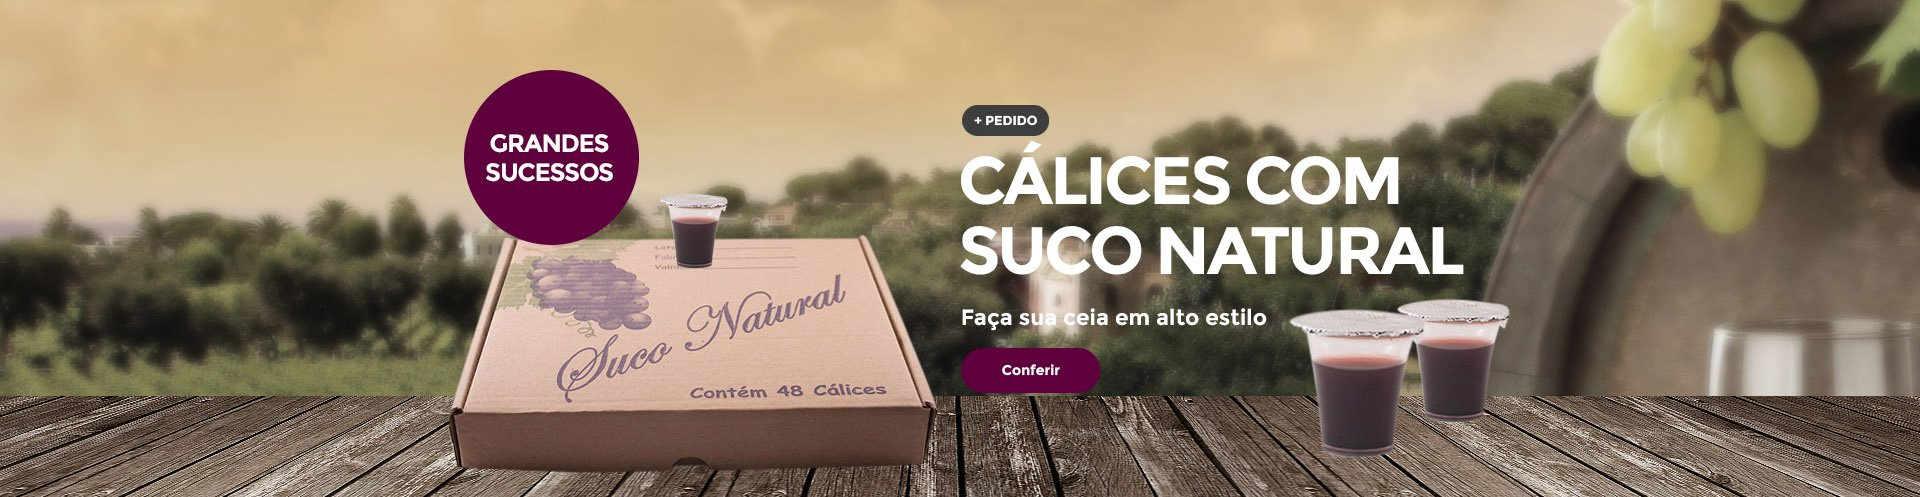 Cálices com Suco Natural